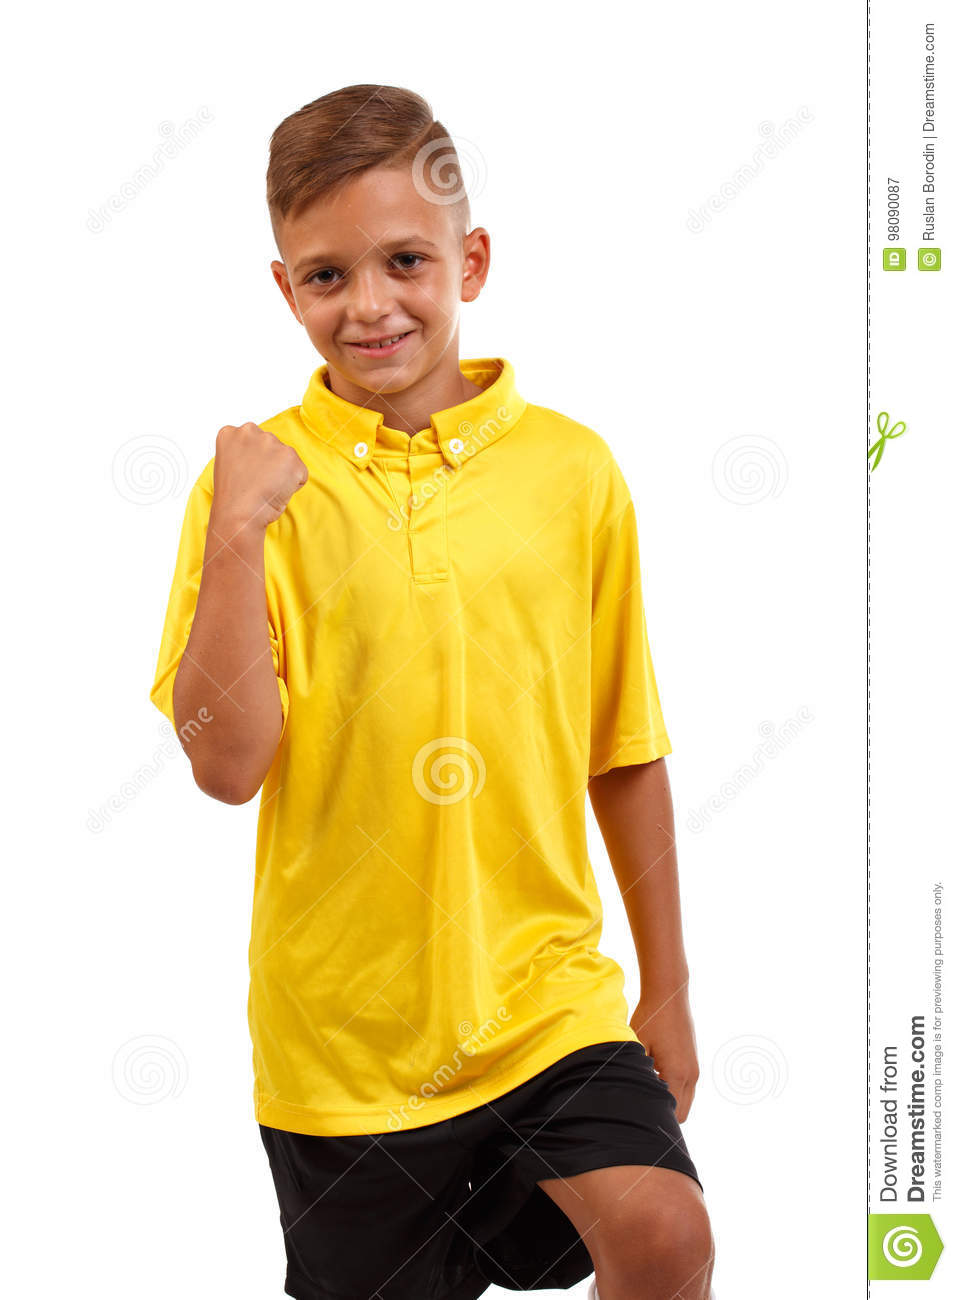 Close-up of a glad boy who won the championship. A cheerful child in a football uniform isolated on a white background